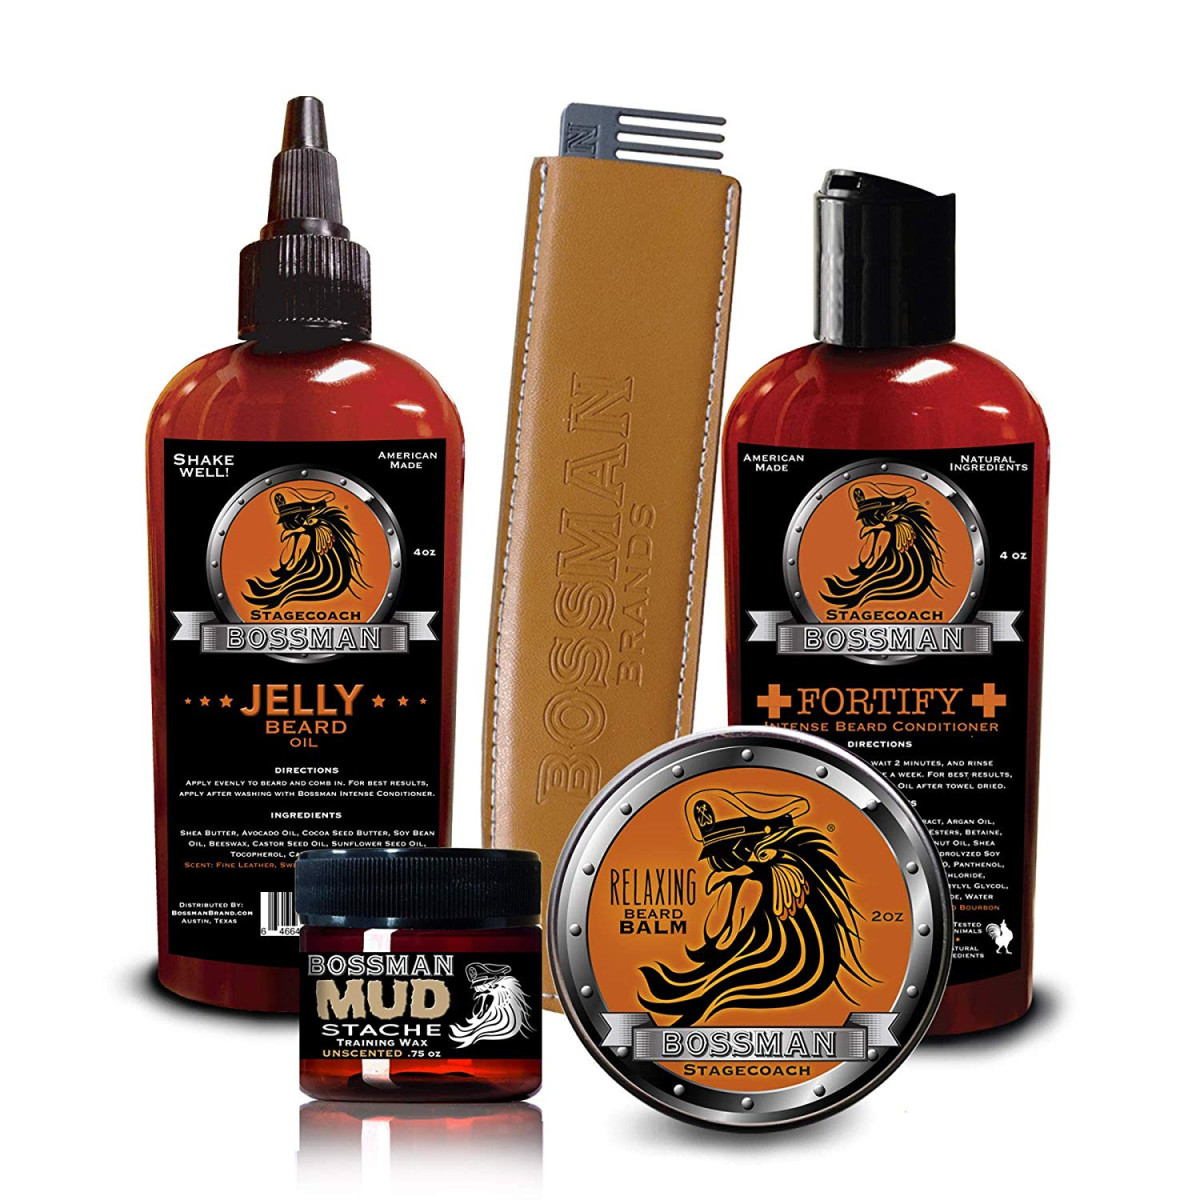 Complete Facial Hair Care Kit - Stagecoach - Jelly Beard Oil, Relax Beard  Balm, Fortify Intense Beard Conditioner, Mudstache Mustache Wax and Metal